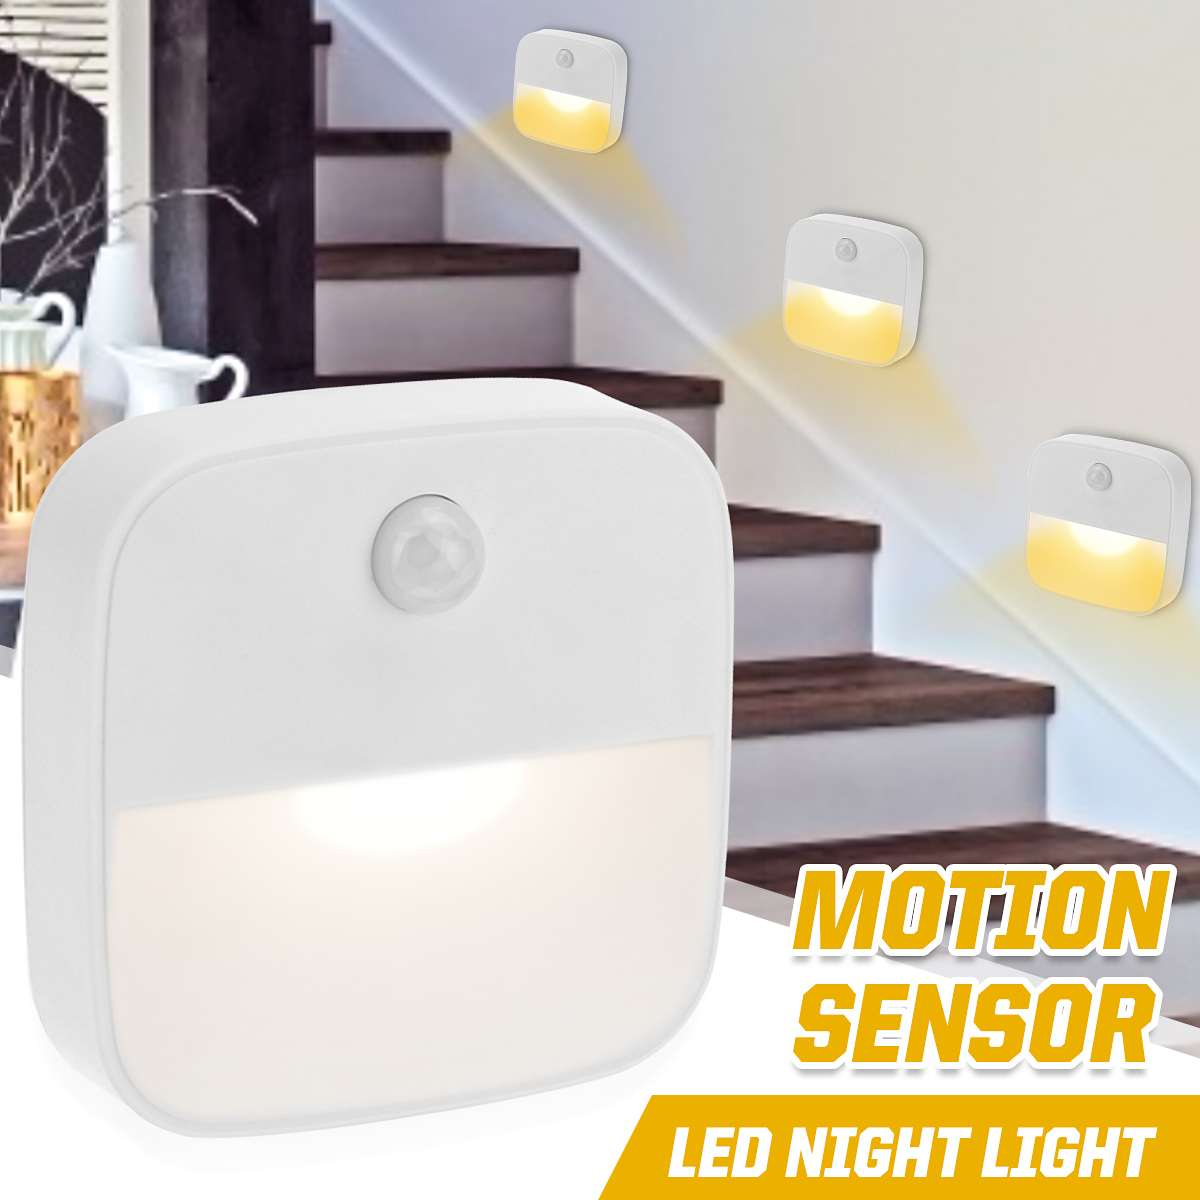 110-220V Night Light Motion Sensor PIR Human Infrared Activated Movement Detect Wall Emergency Lamp Hallway Bedroom